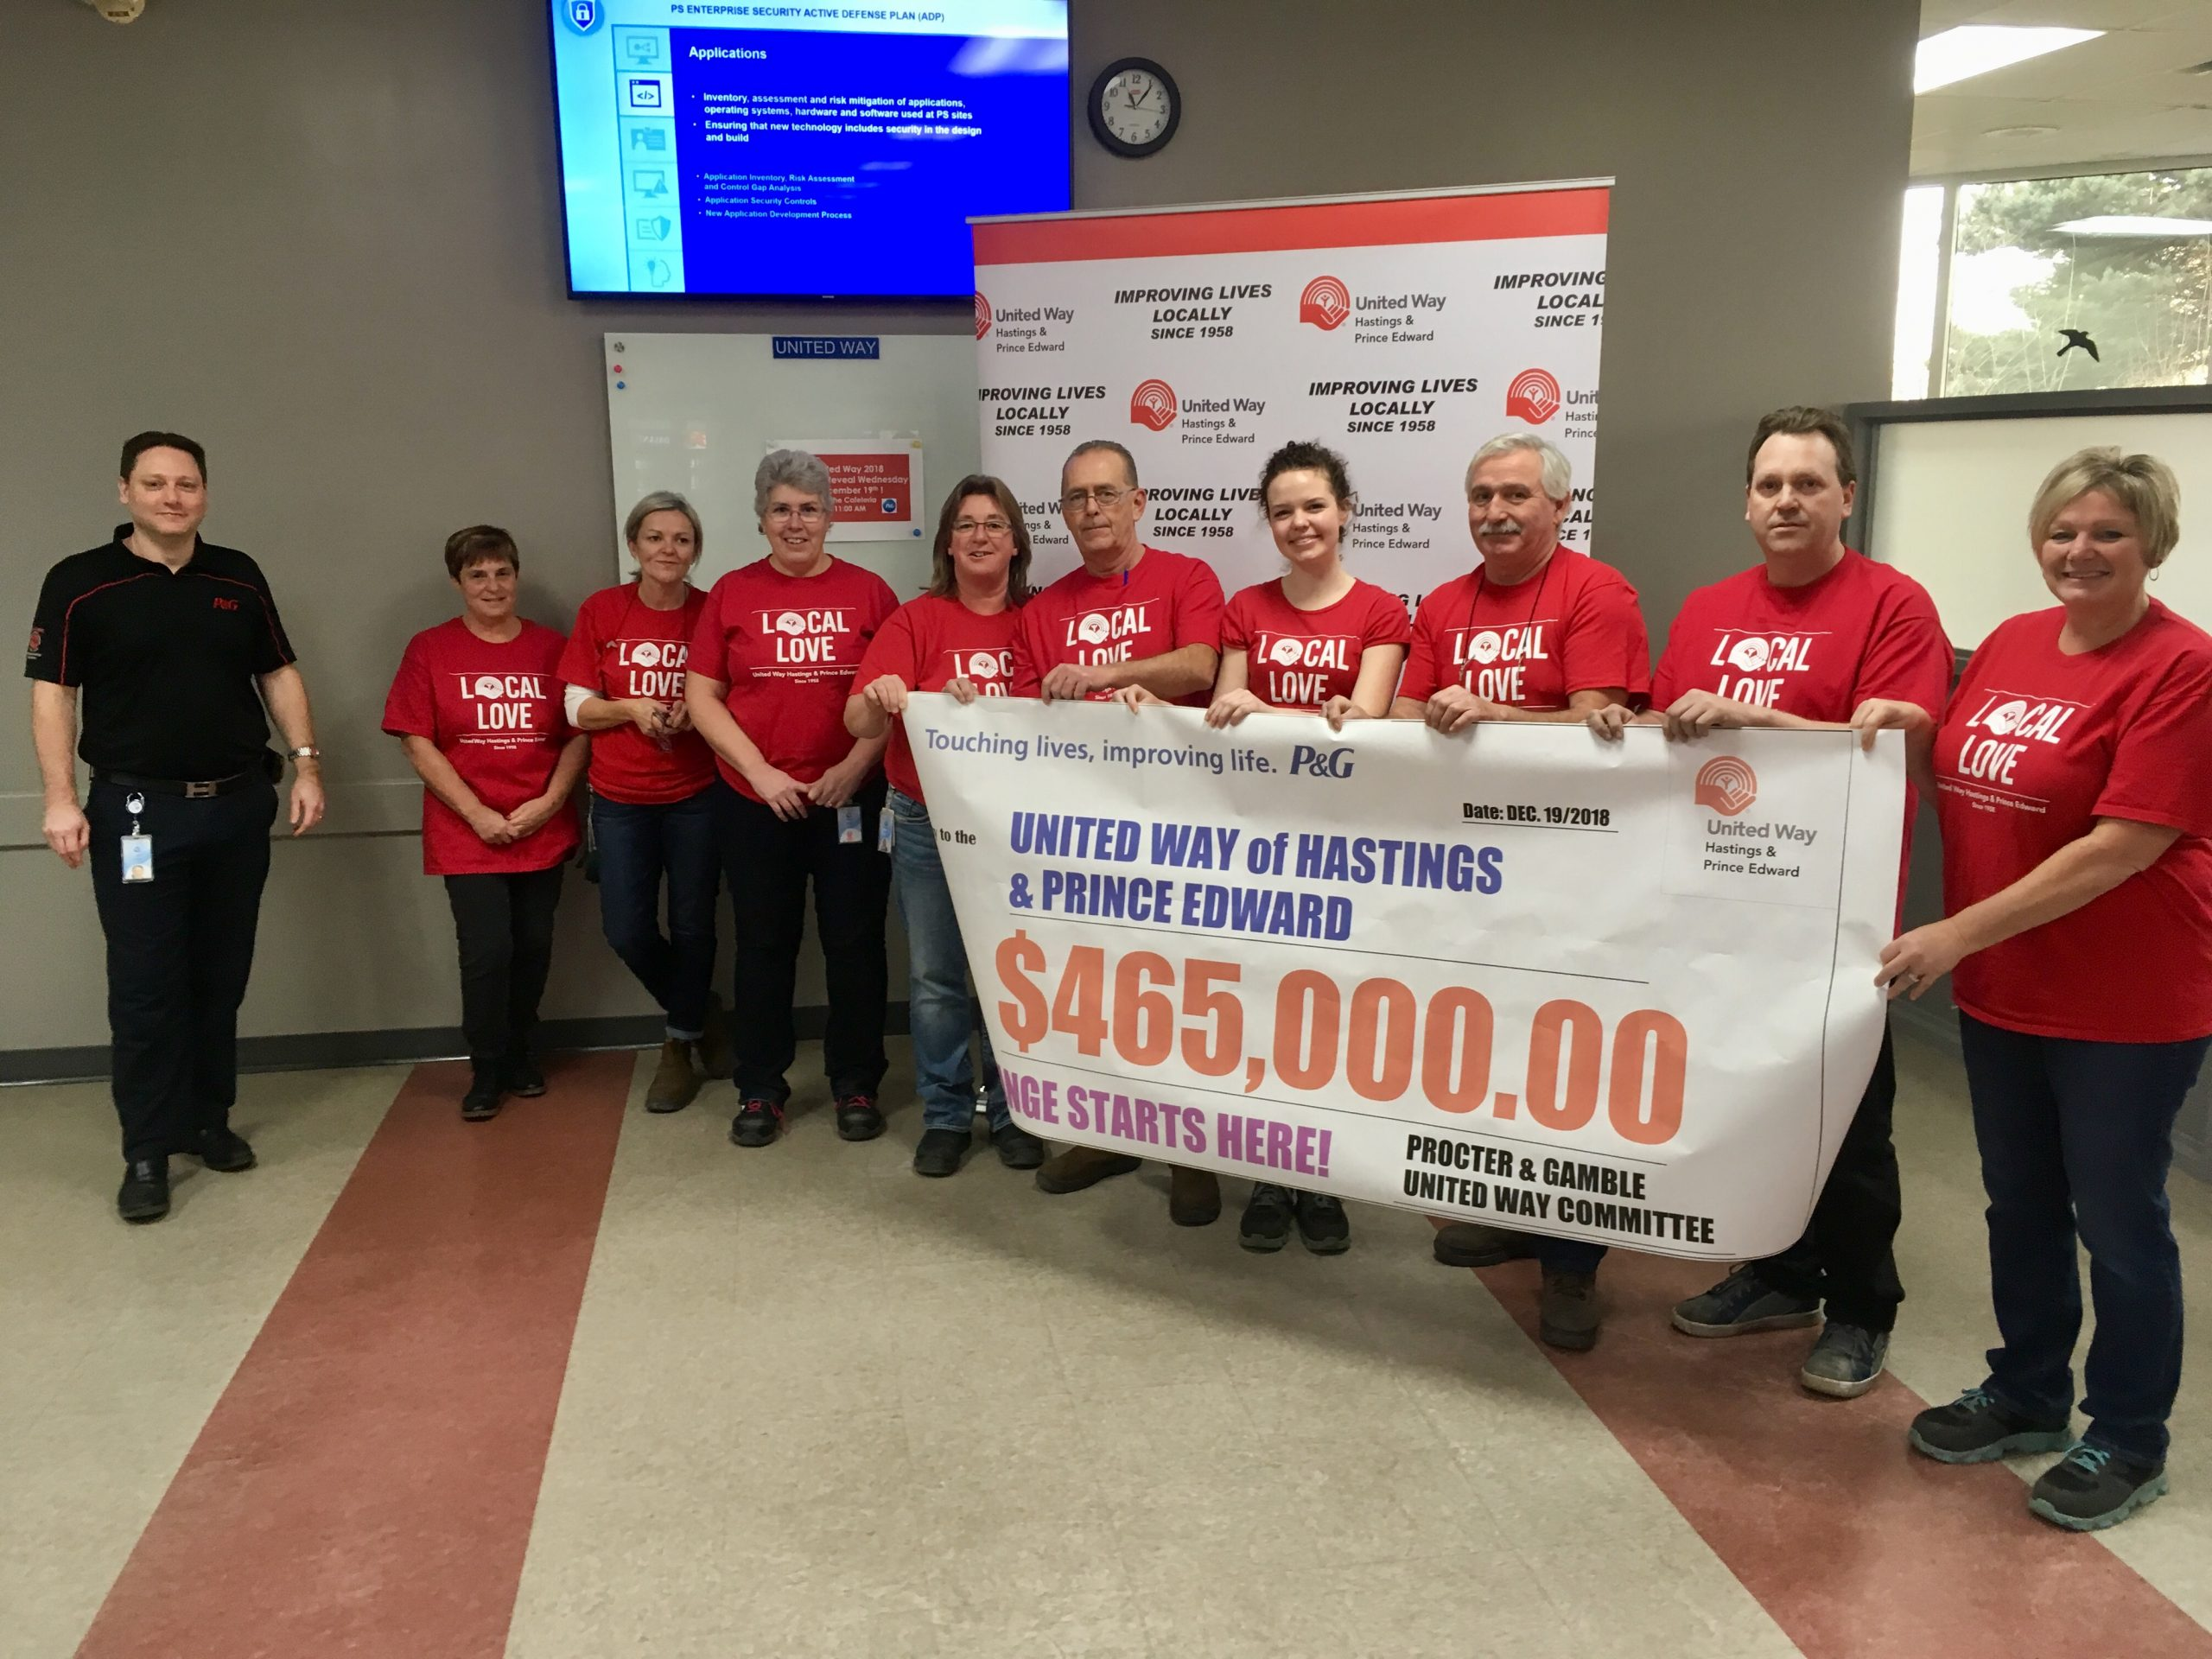 P&G deliver United Way HPE an early Christmas gift